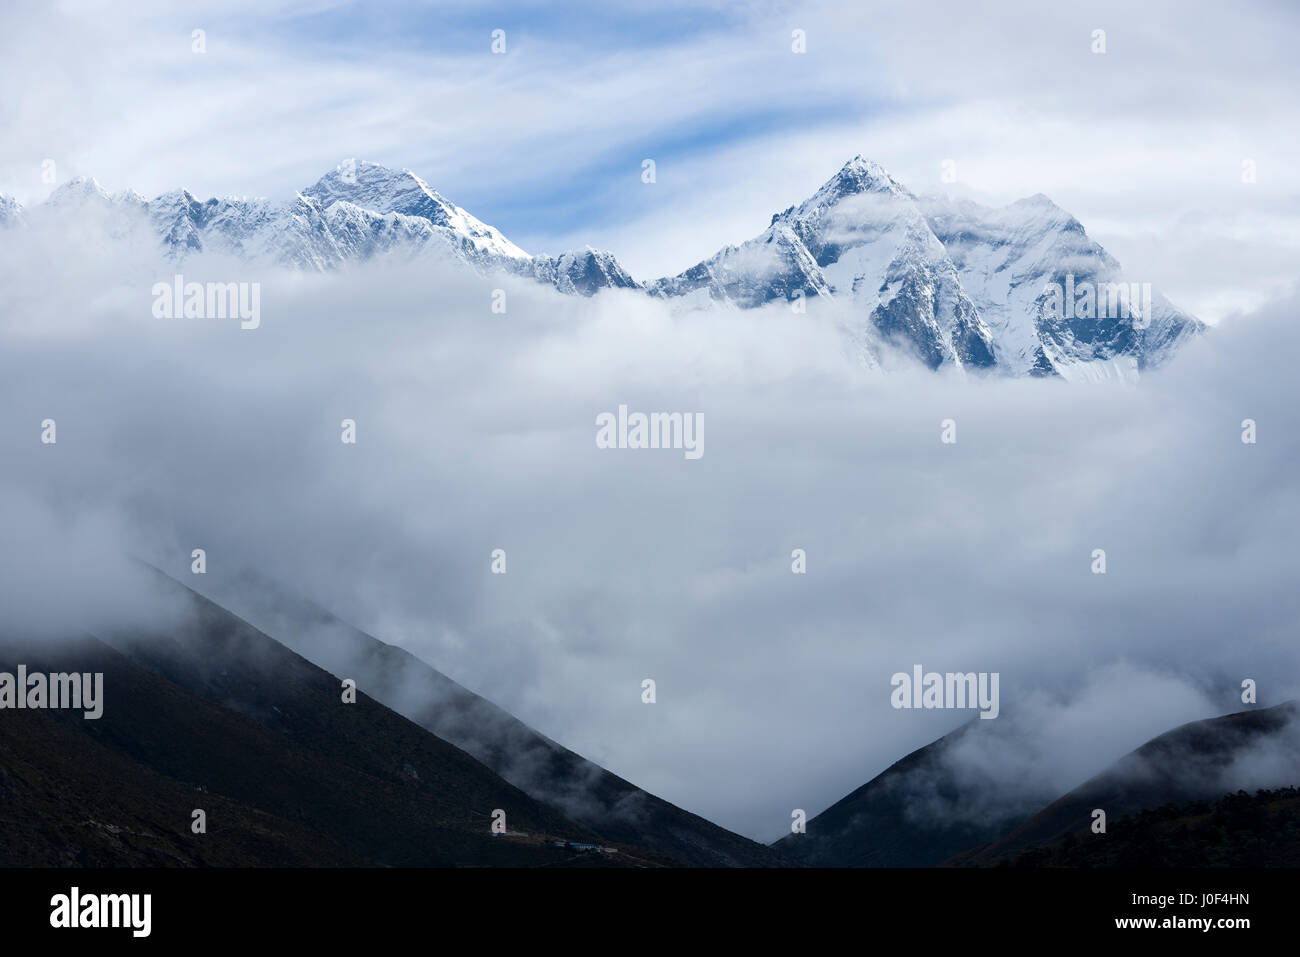 Mount Everest and Lhotse rise above morning clouds, seen from Tengboche, Nepal. Photo © robertvansluis.com - Stock Image